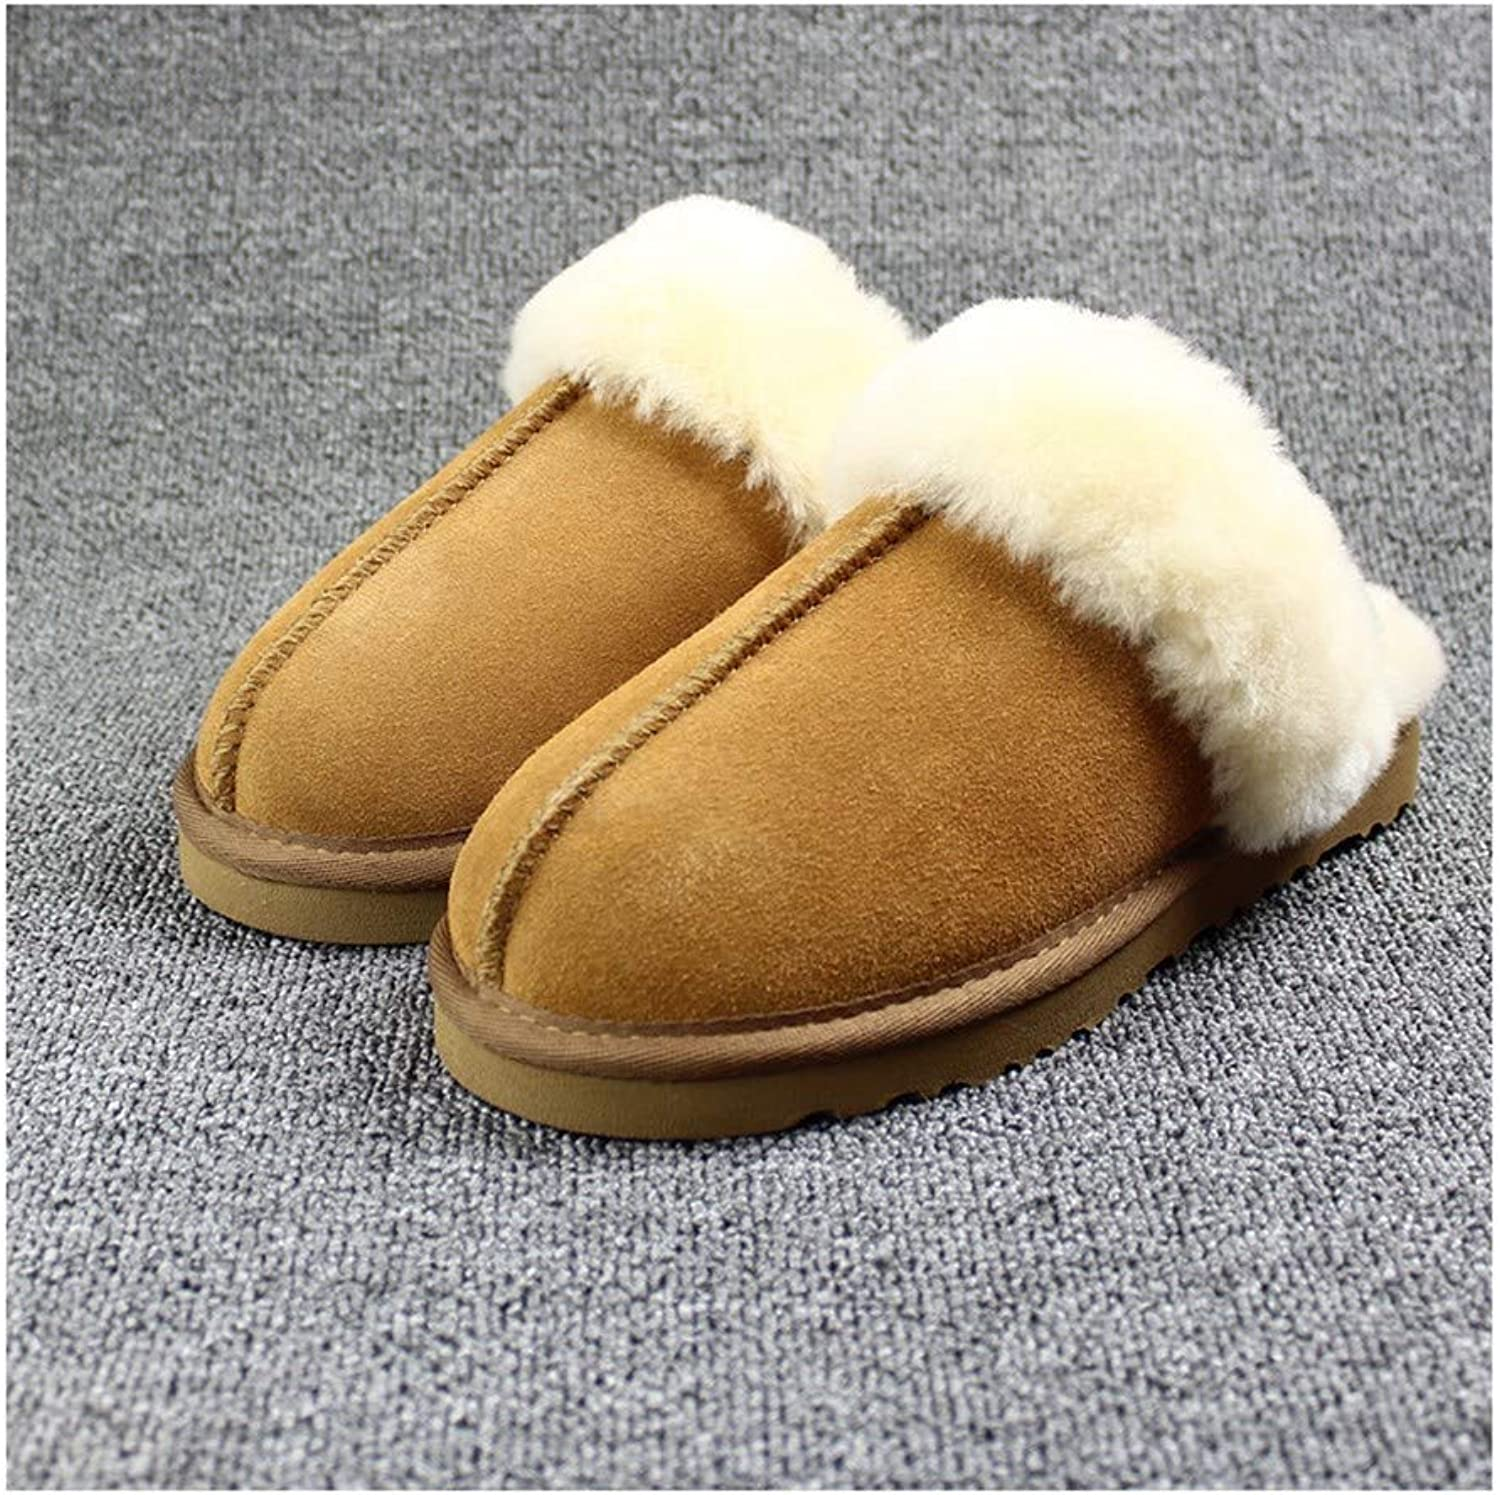 GAOHUI Men High-End Handmade Cotton Slippers Indoor Thermal Skid Slippers Chestnut